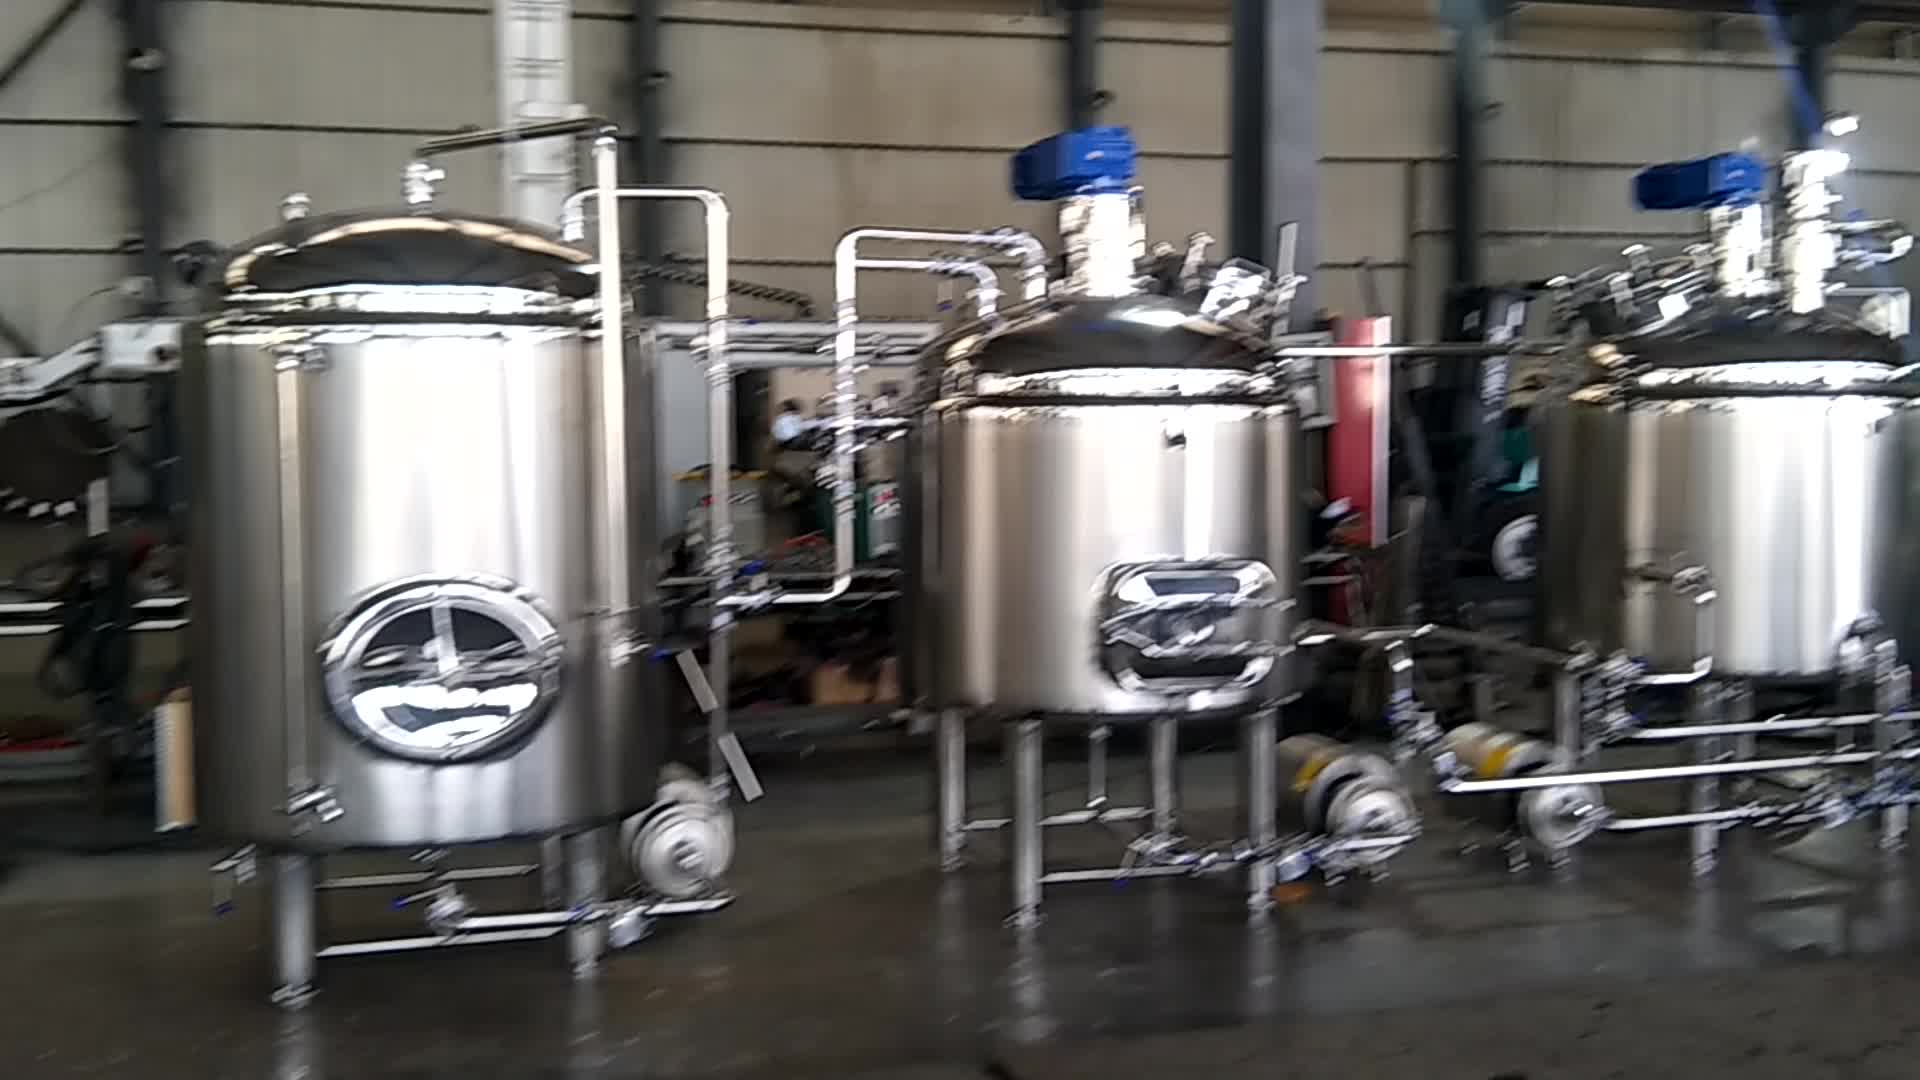 KUNBO Commercial Craft Beer Brewery Equipment Beer Fermentation Tank for Sale